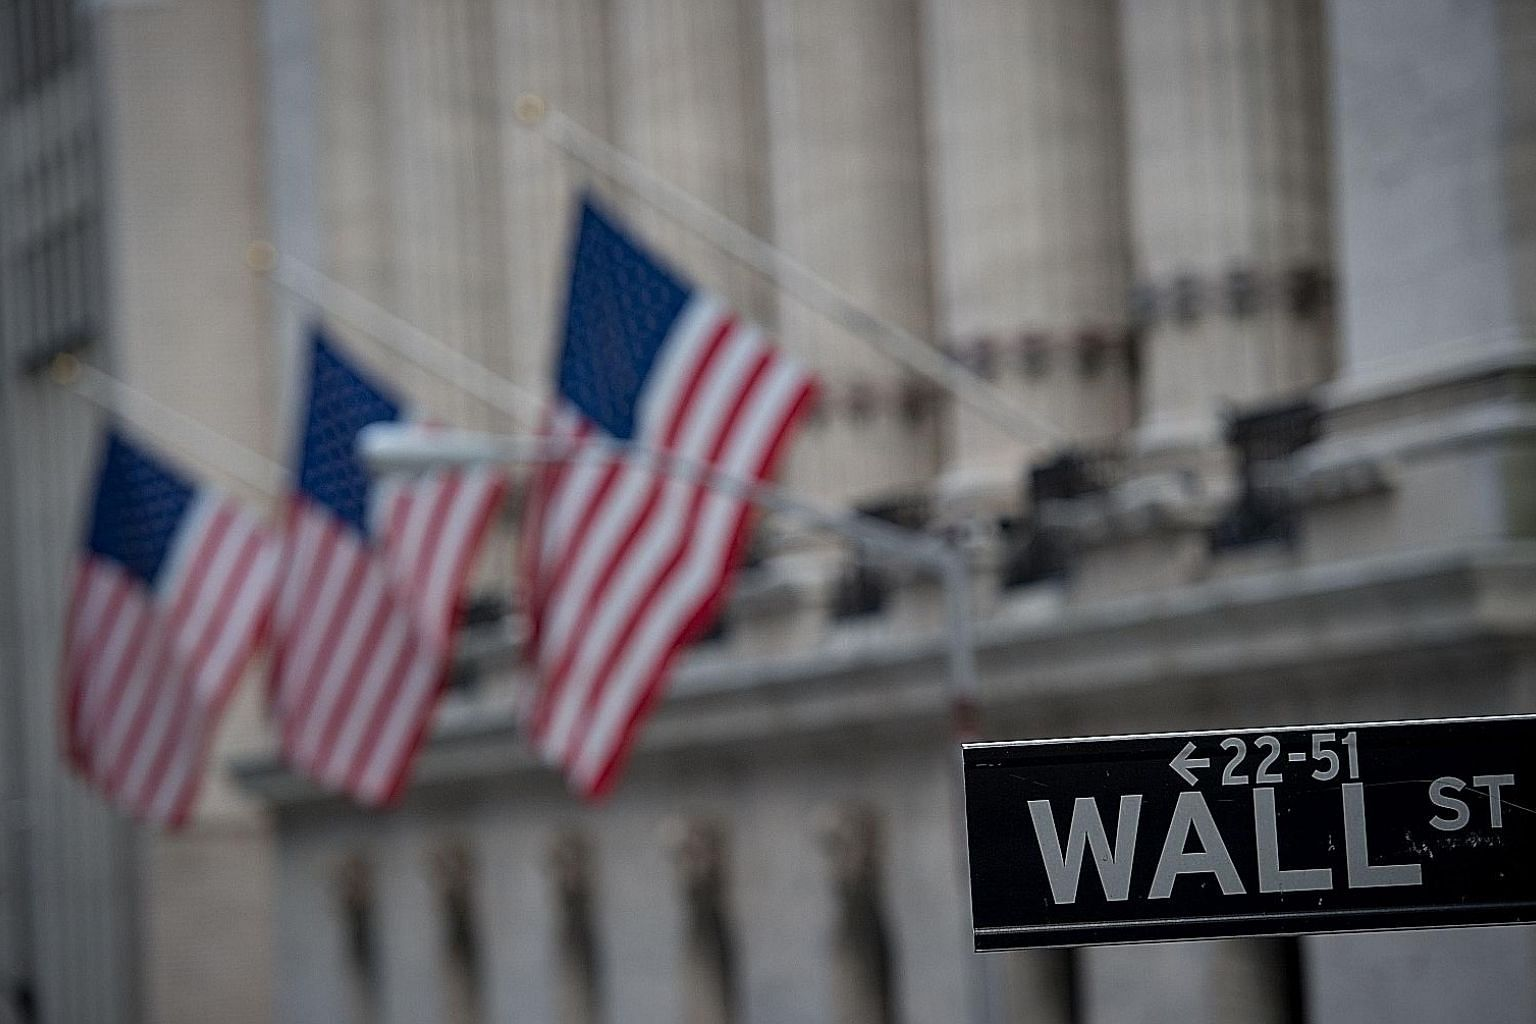 After Lehman Brothers' collapse, people questioned if the bonuses paid to bankers on Wall Street were in part responsible for the excessive risks taken that led to the financial crisis. After all, Wall Street has always relied on variable performance